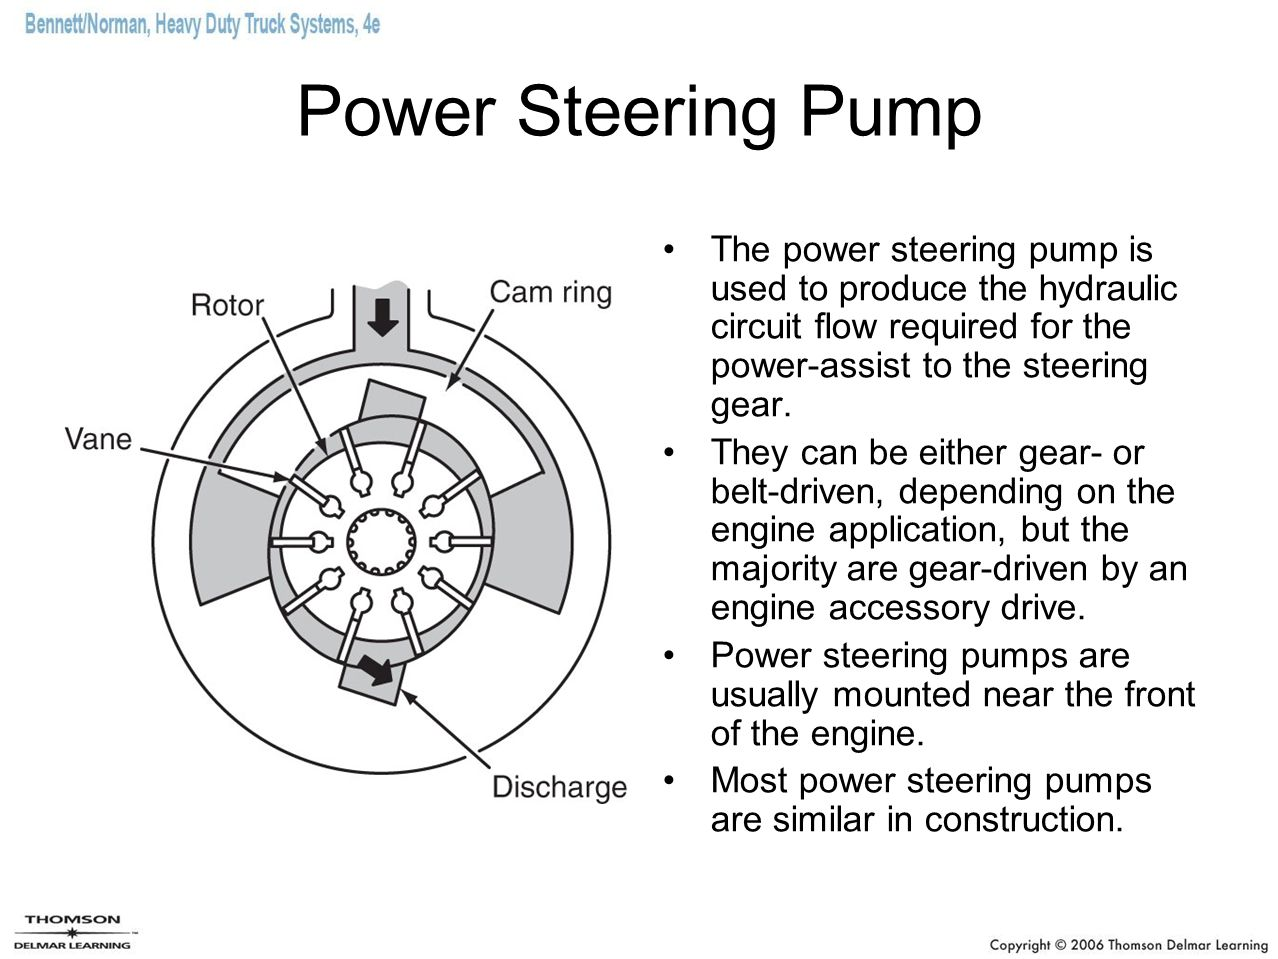 Power Steering Pump The power steering pump is used to produce the hydraulic circuit flow required for the power-assist to the steering gear.